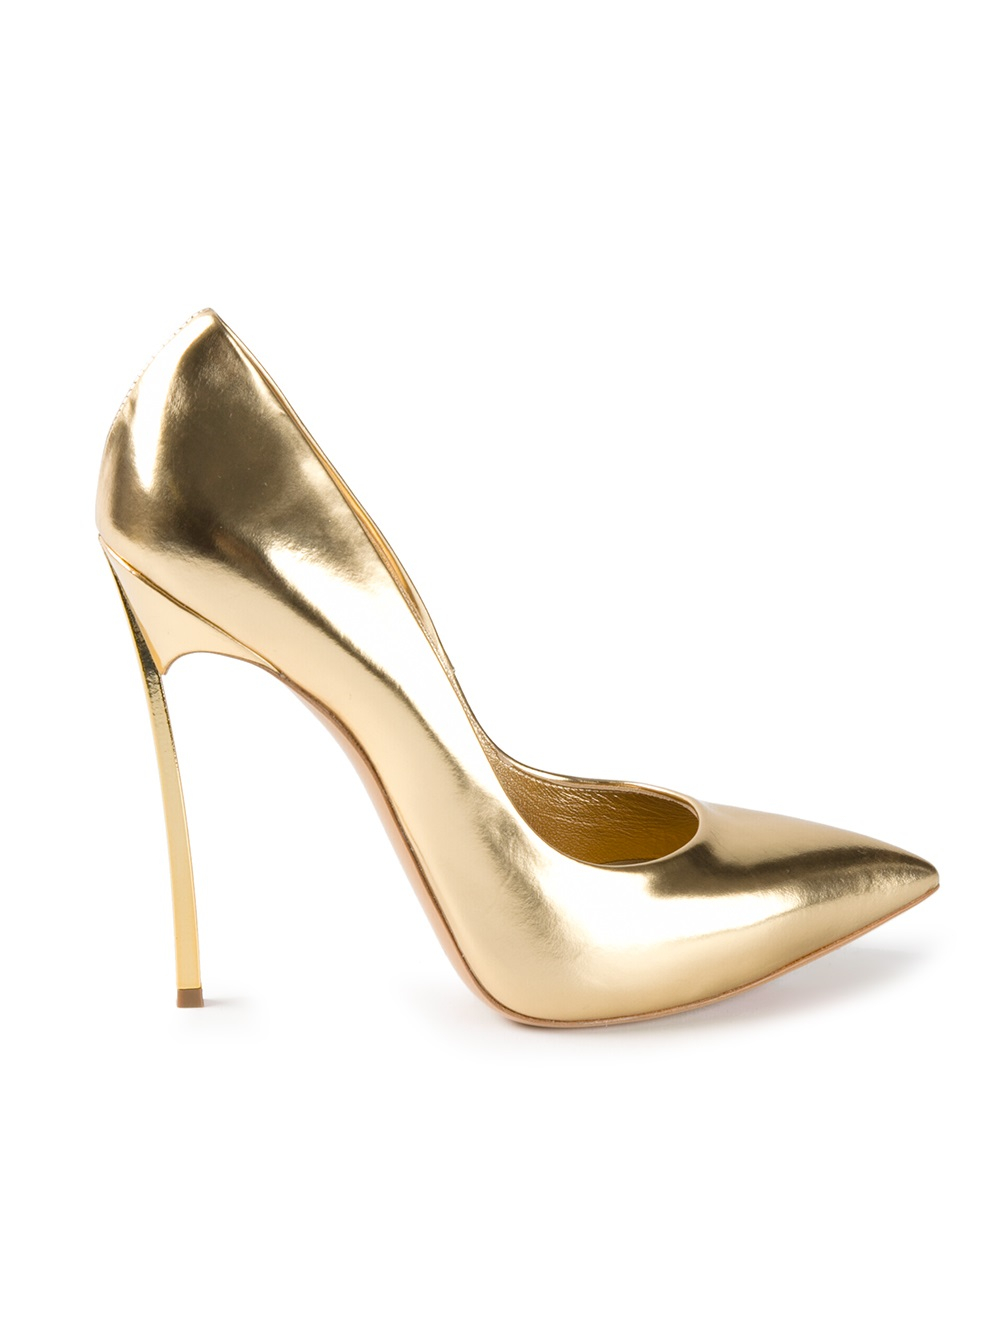 Gold Shoes High Heels jHkwcY9W